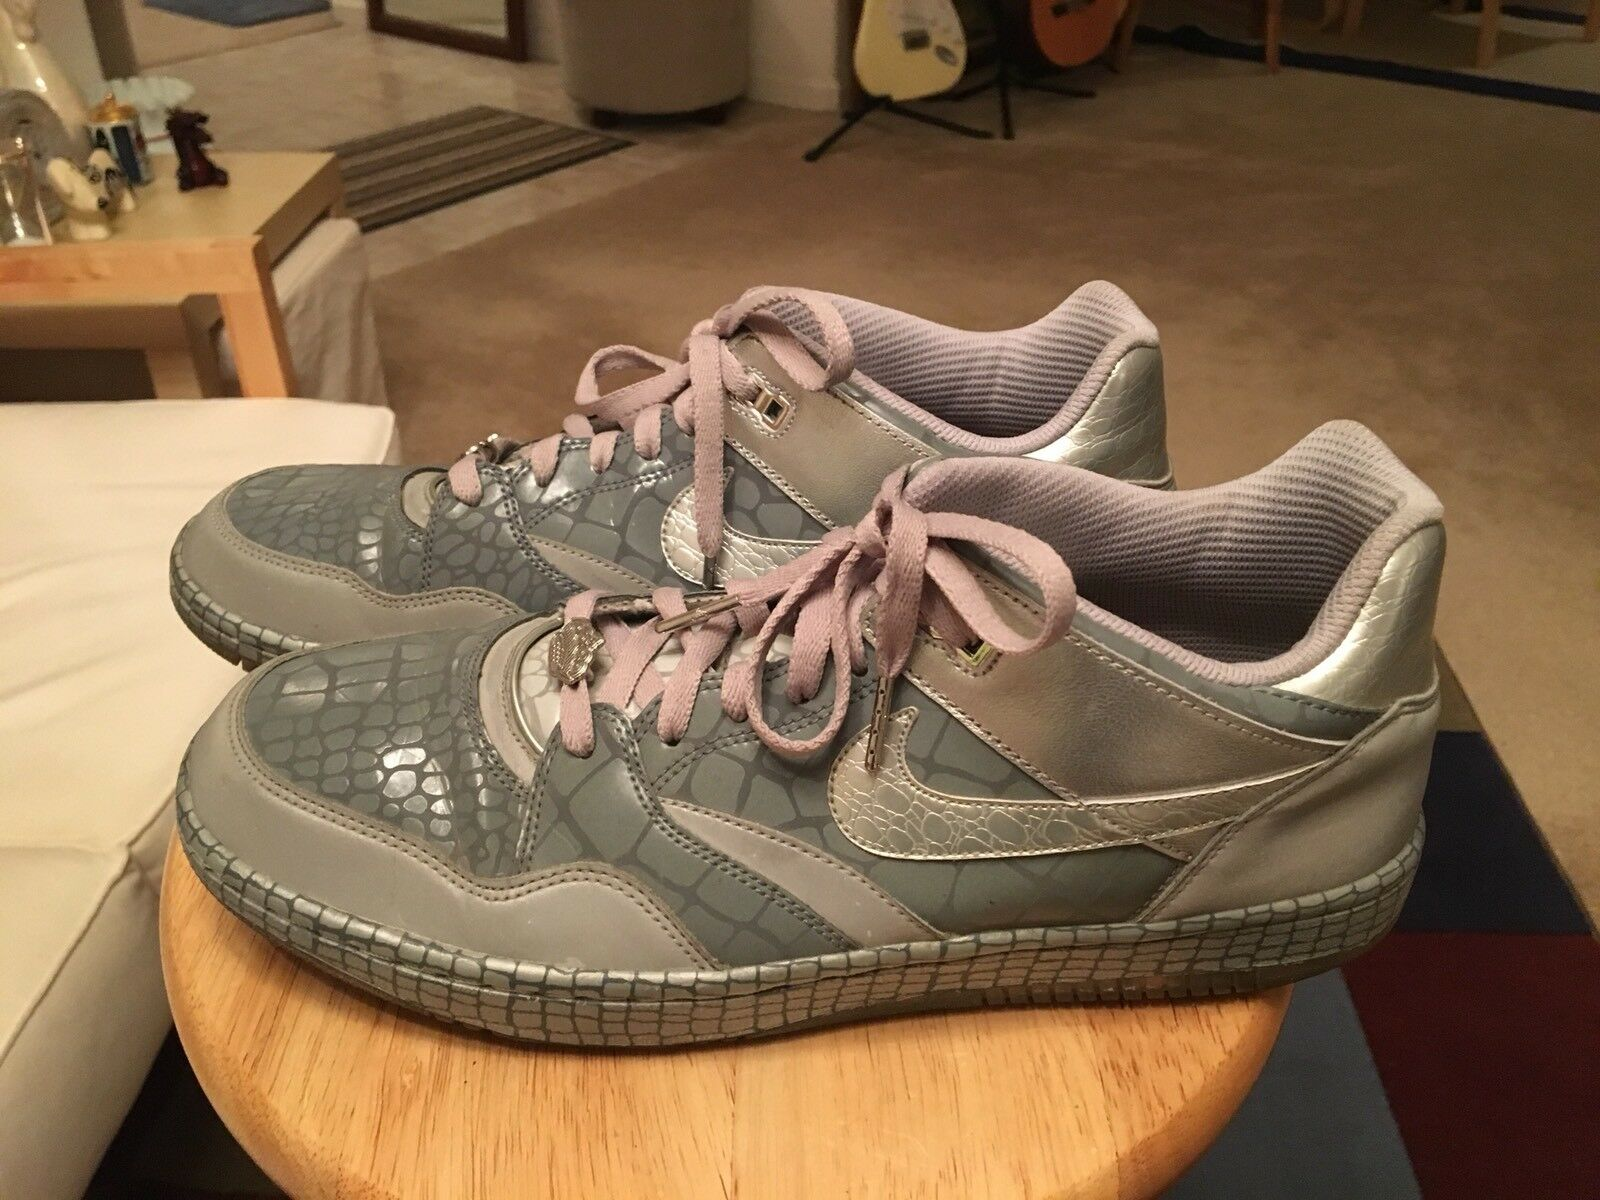 Nike Sky Force 88 Low Mighty Crown Gray/Metallic Silver Mens US12 Athletic Shoes